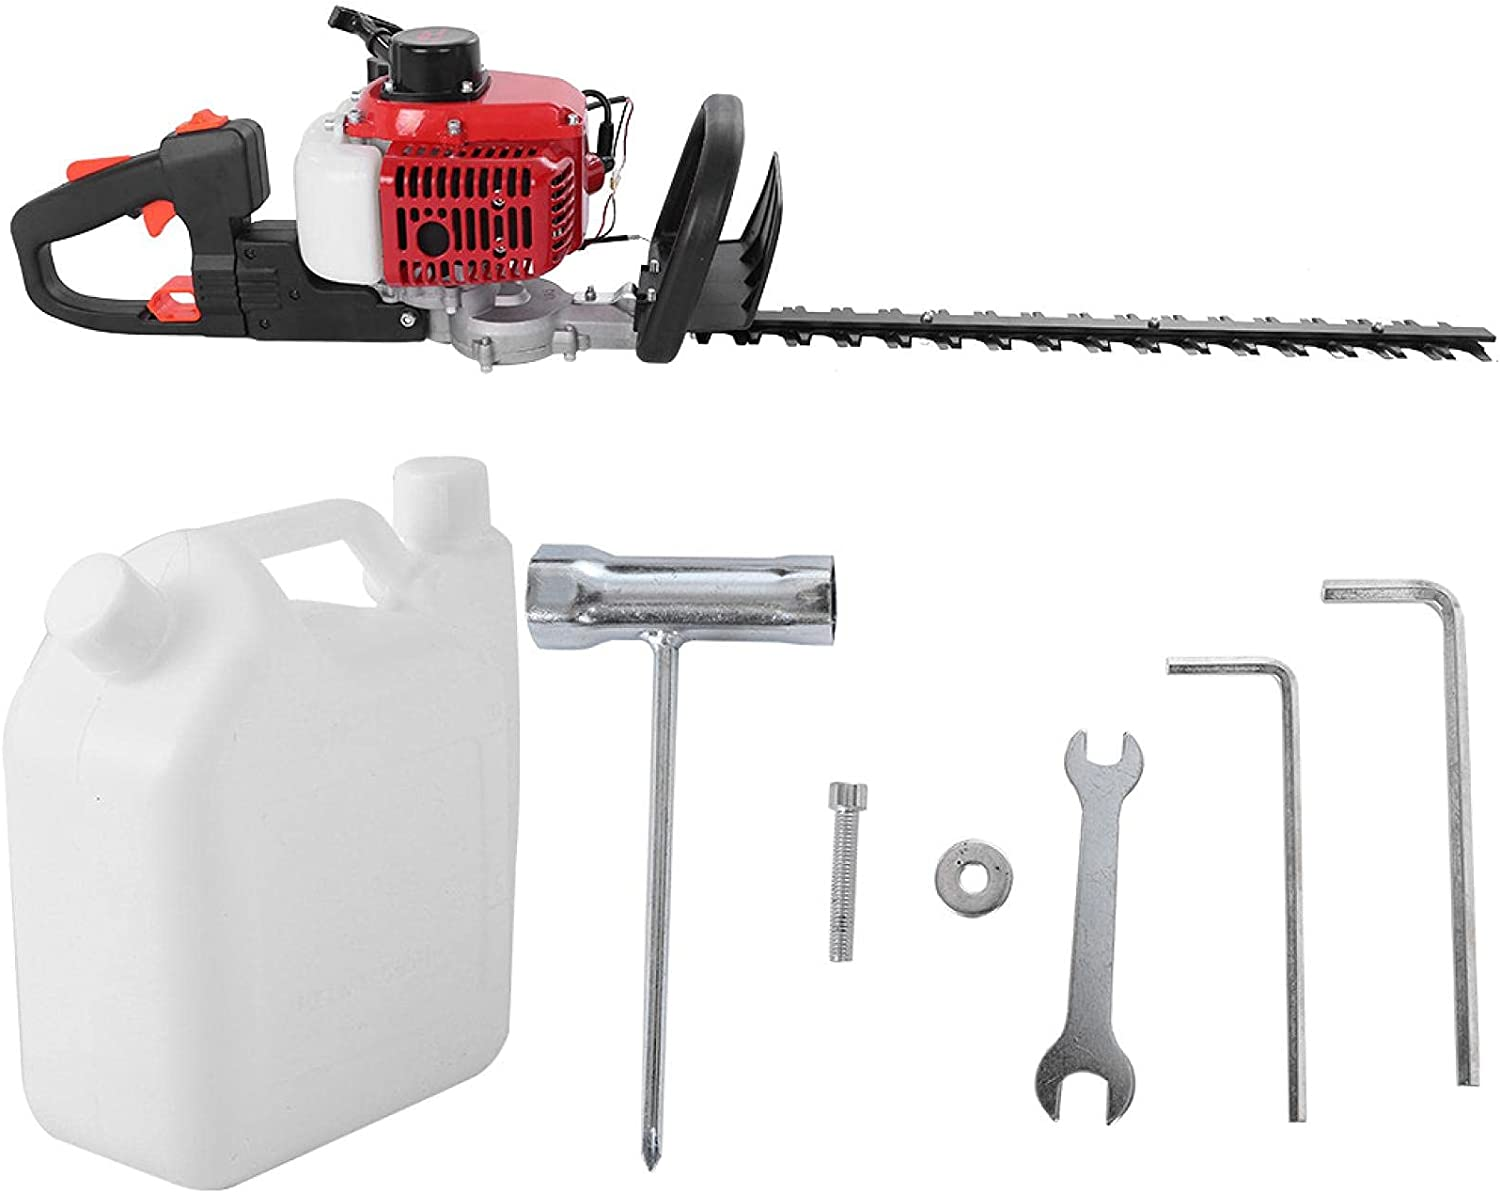 Overseas parallel import regular item 26CC 2-Cycle Gas Hedge Trimmer Gasoline 24